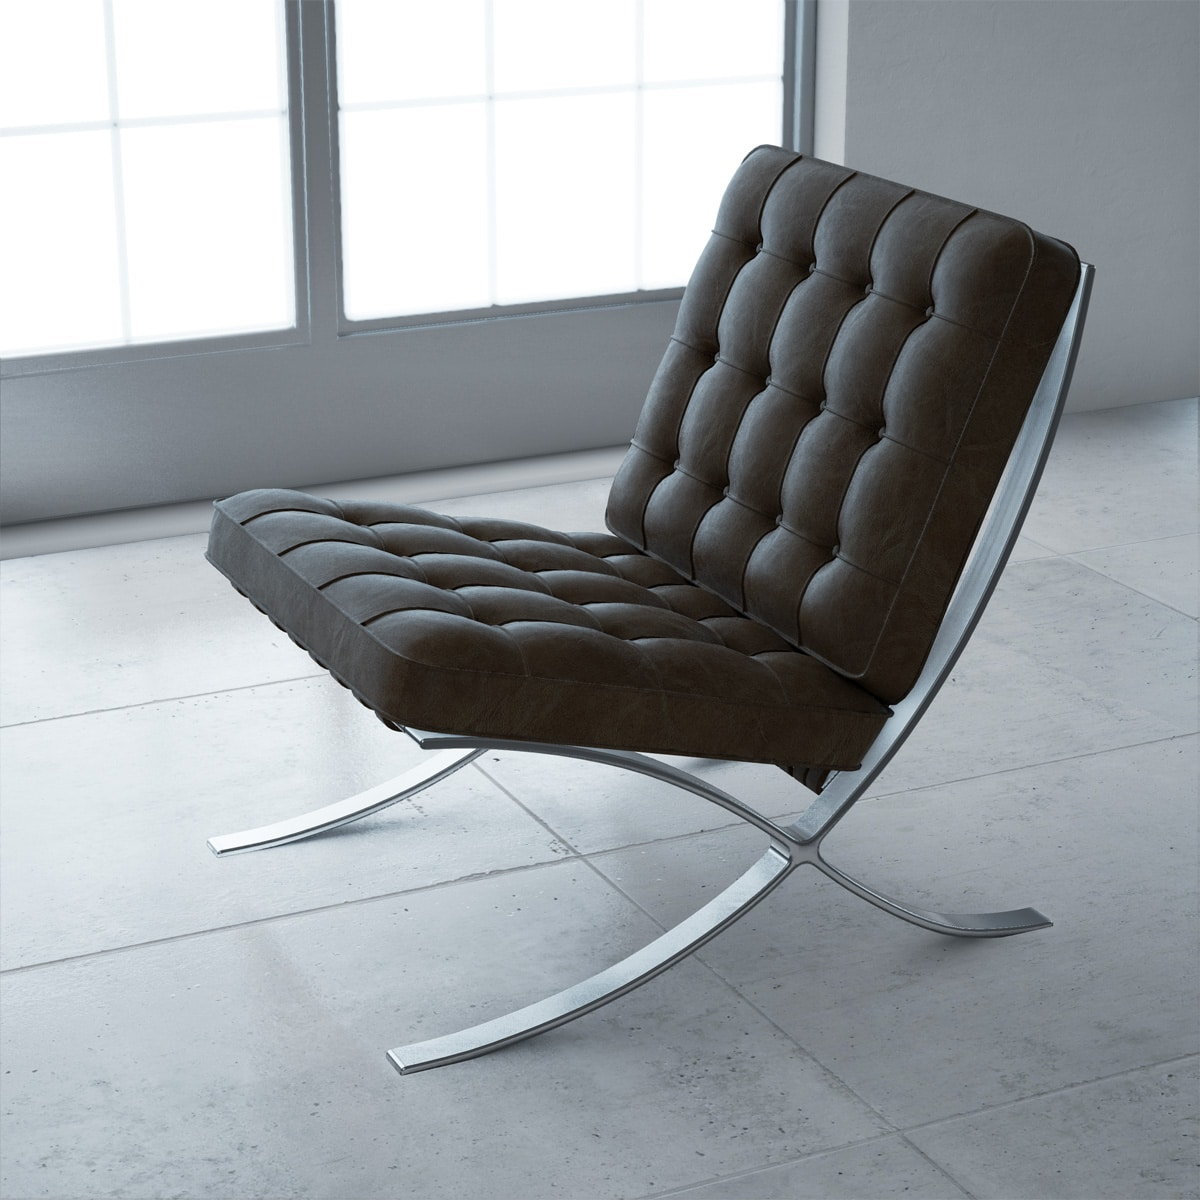 barcelona chairs reclining gravity chair ue4arch